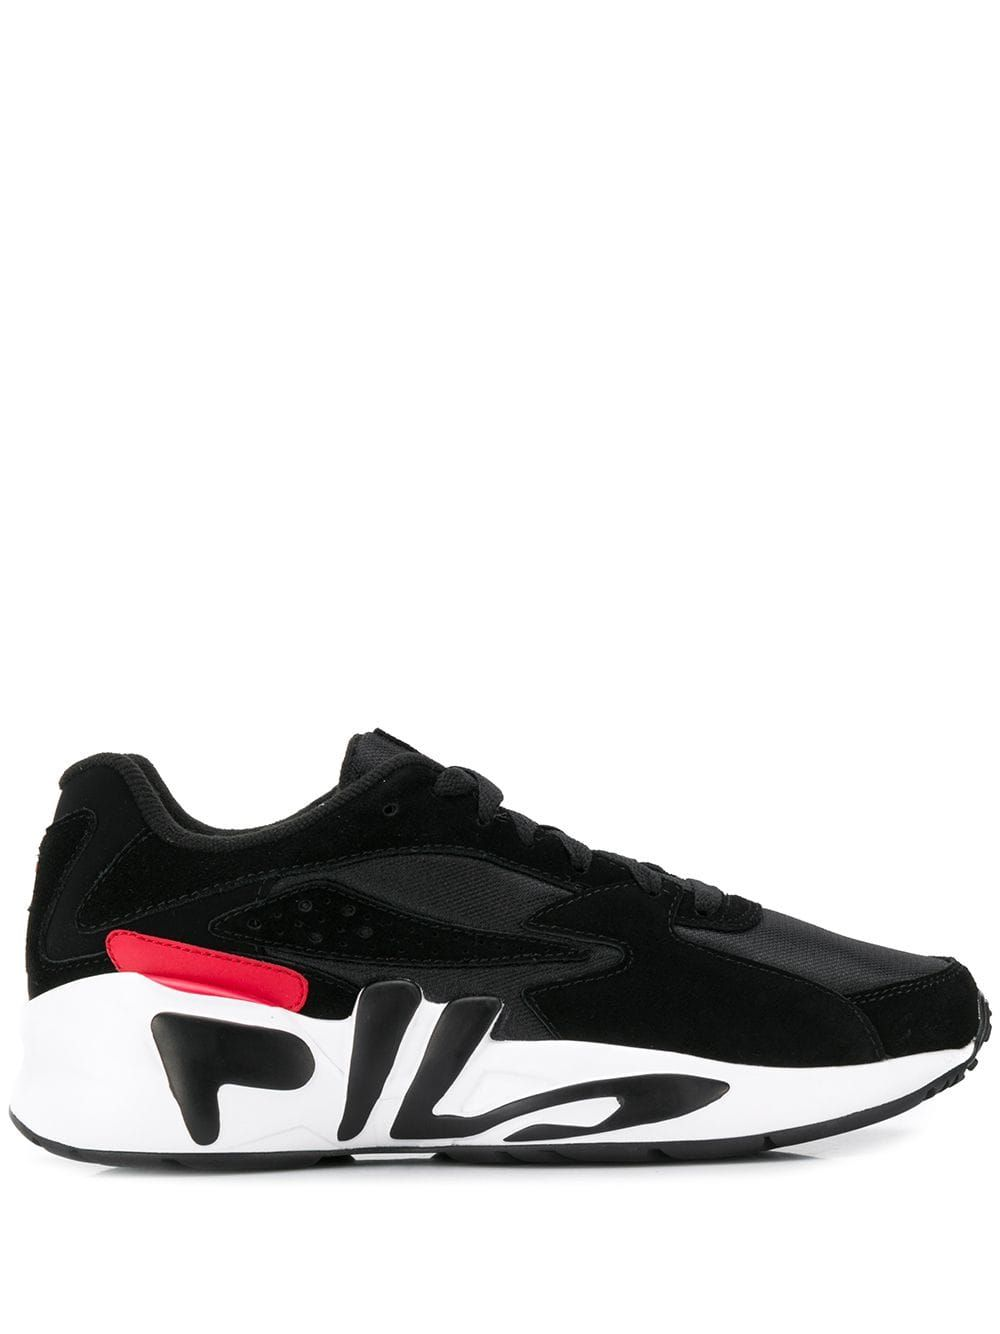 3ce28b2ccef6 FILA FILA LOGO SOLE SNEAKERS - BLACK.  fila  shoes. Find this Pin and ...